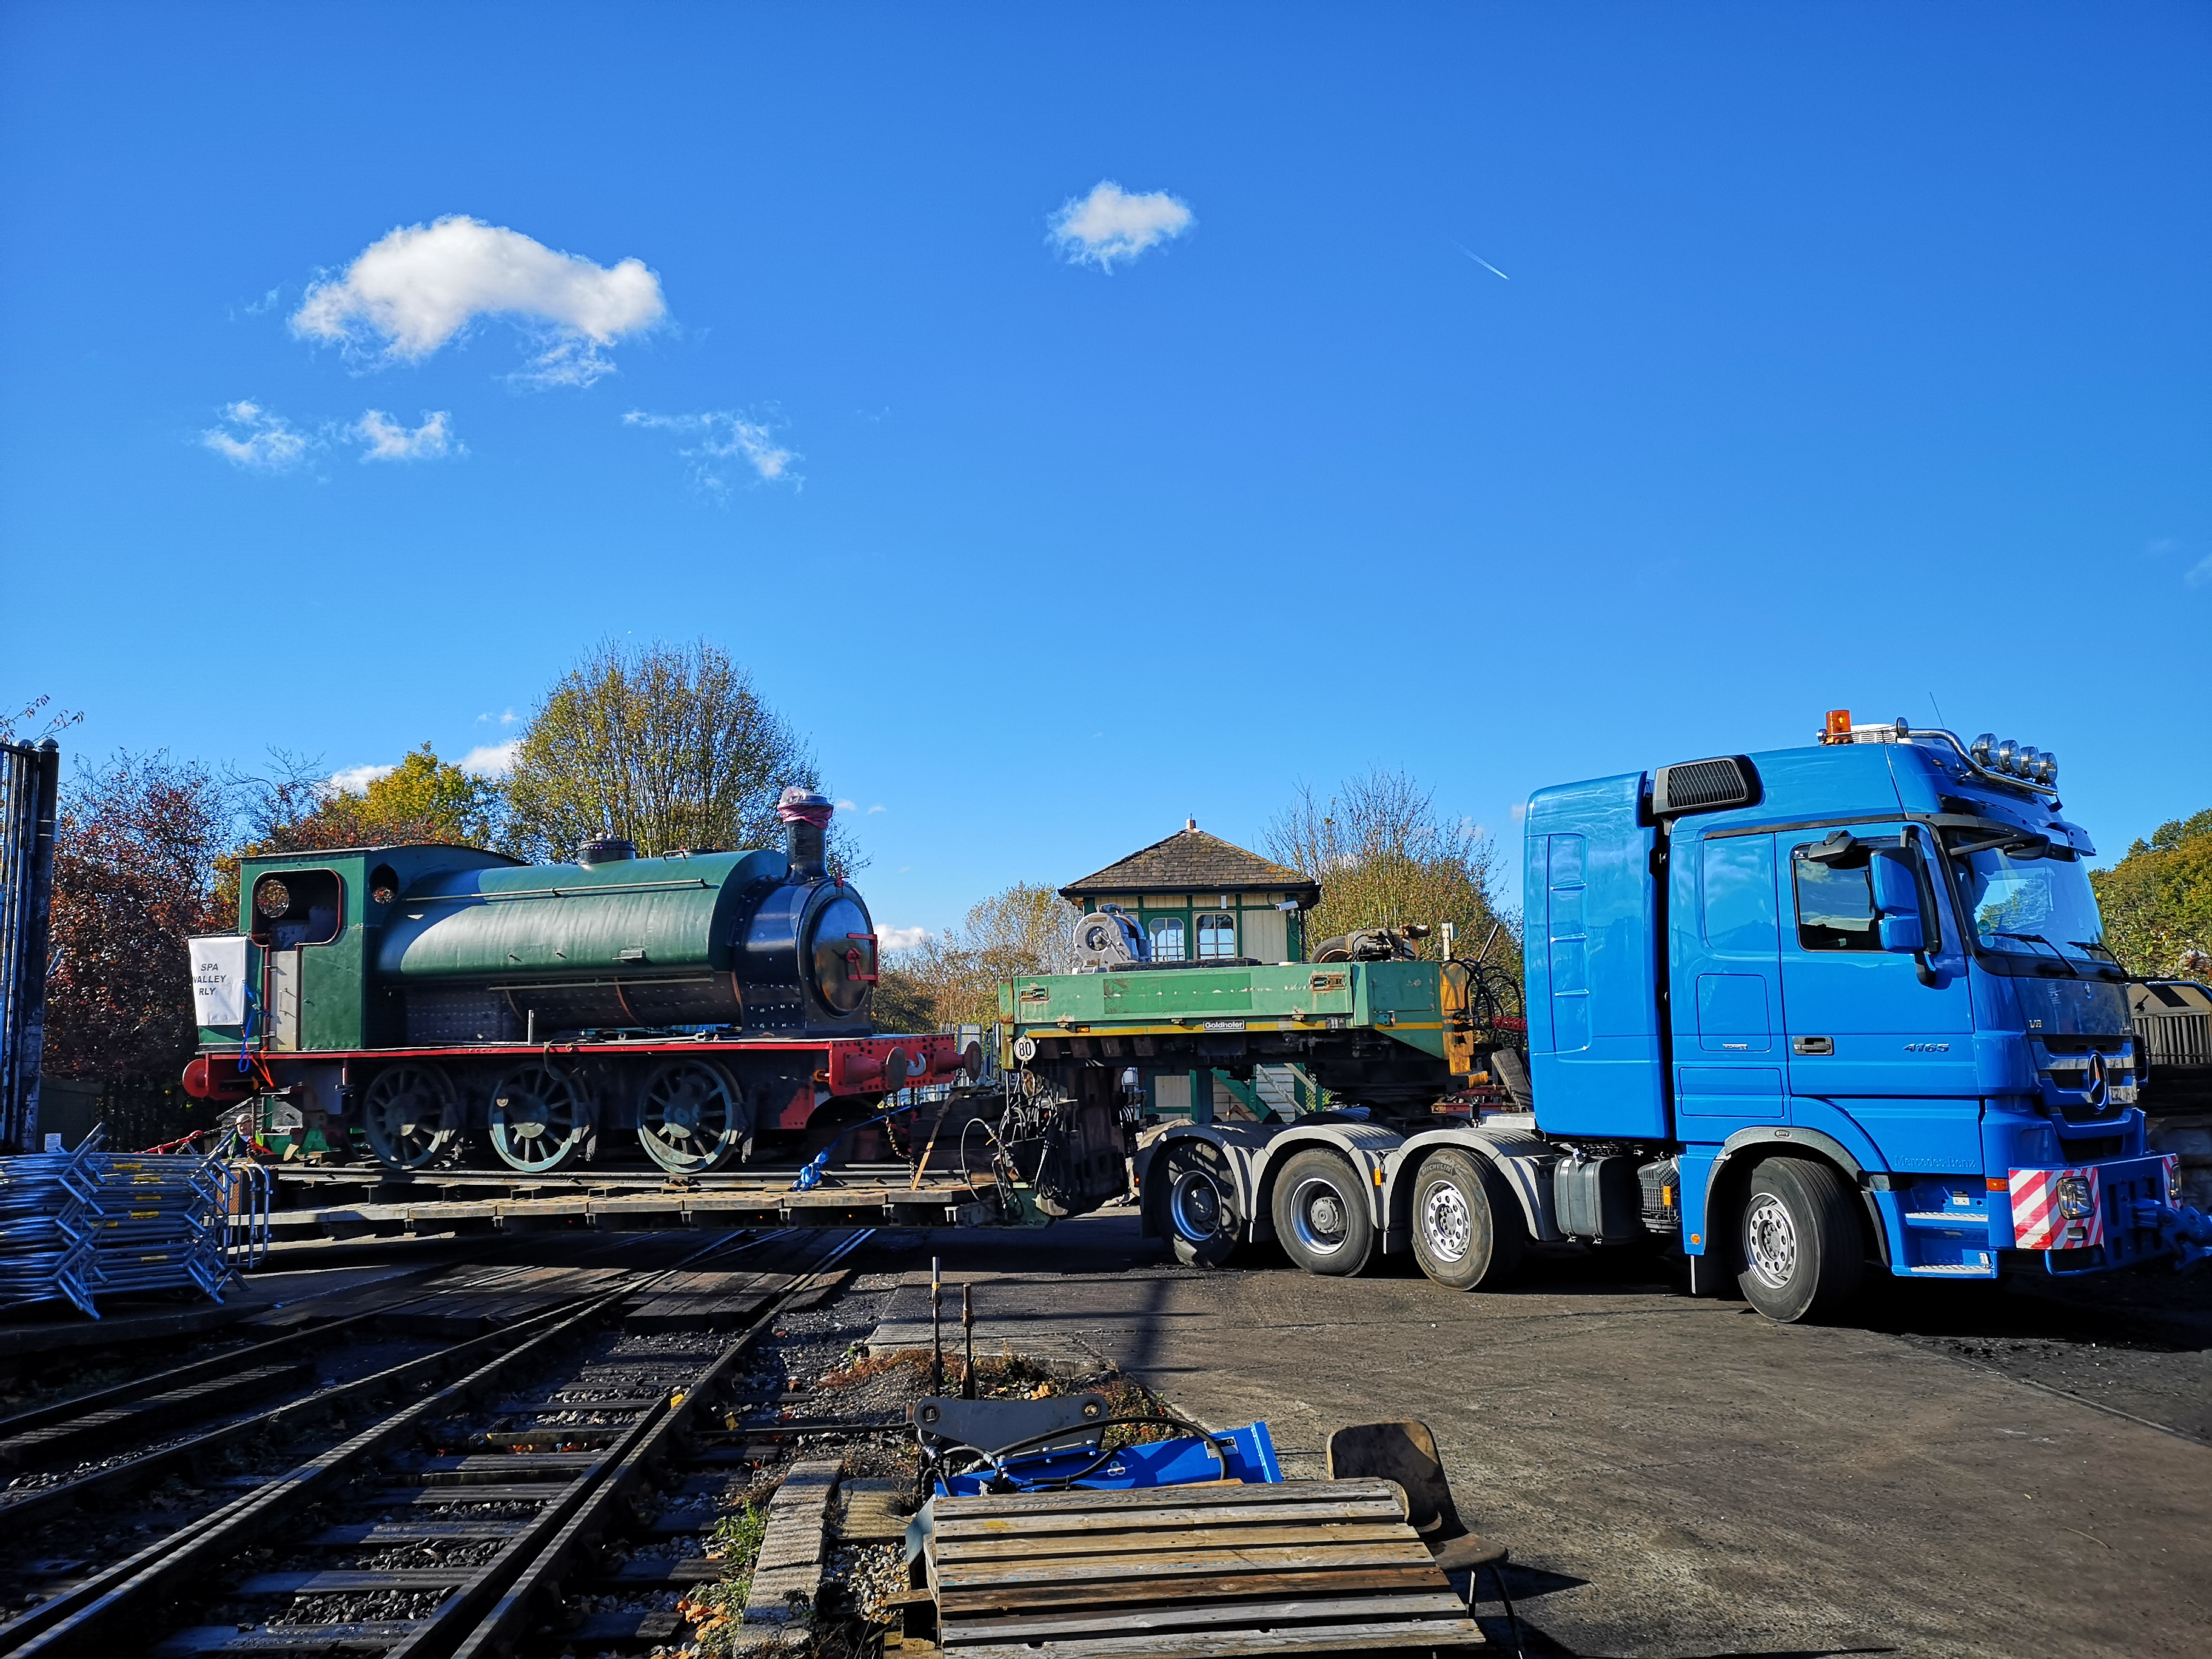 The engine arrives at Tunbridge Wells West